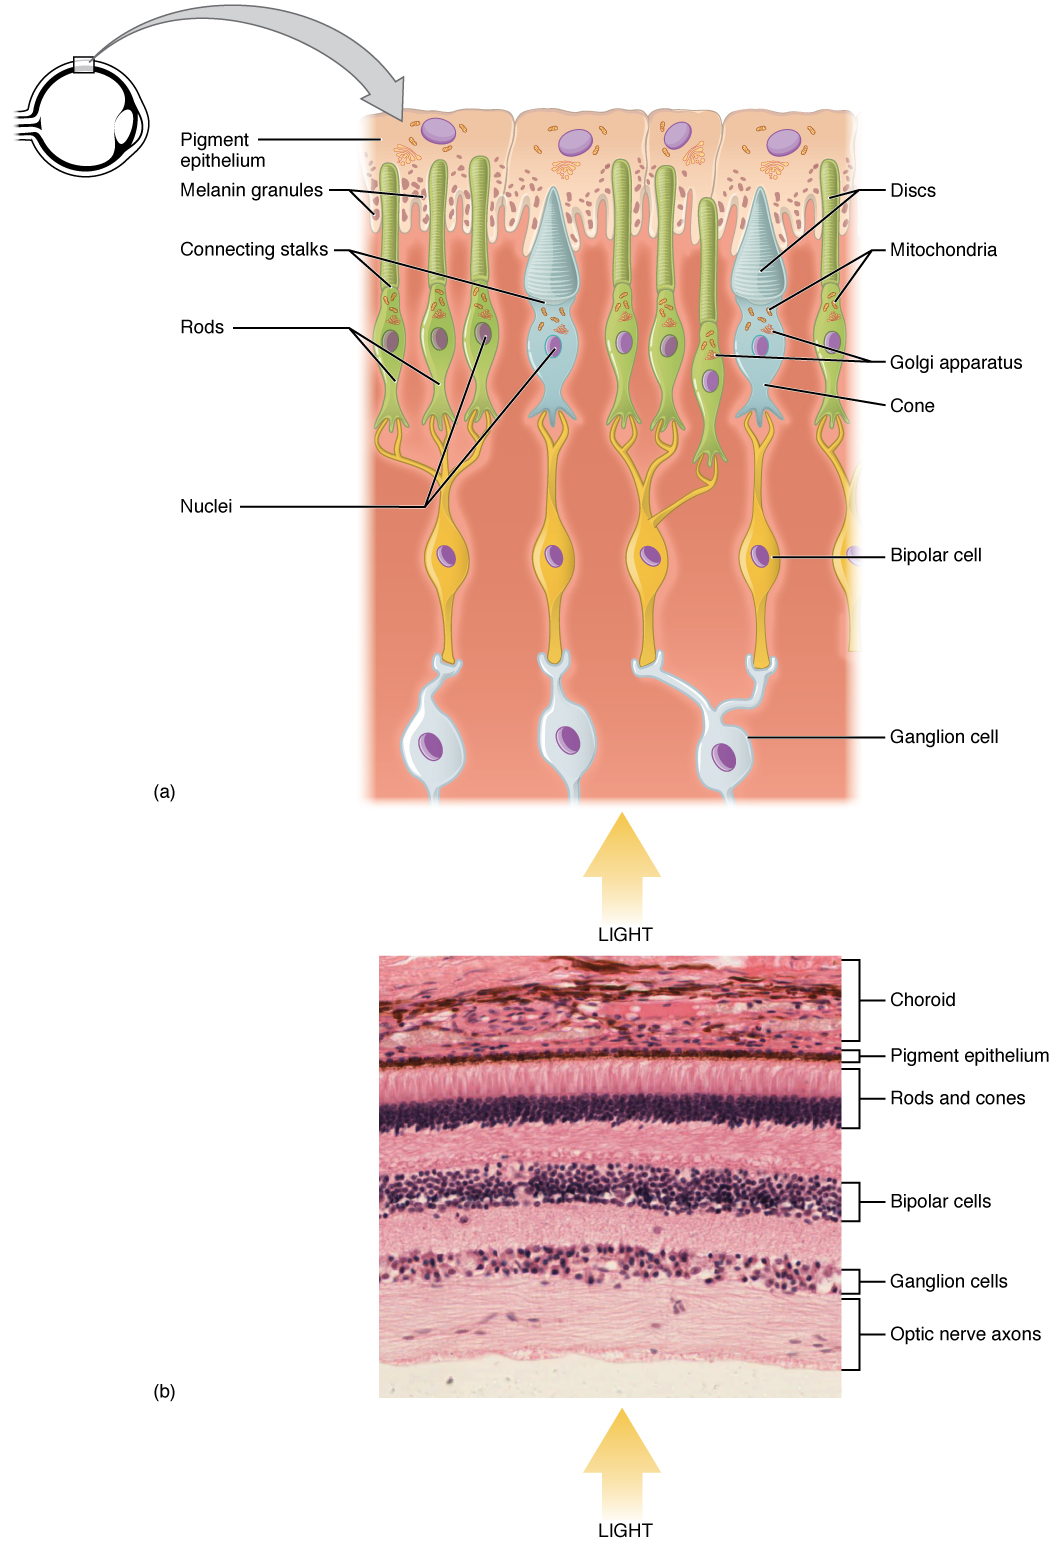 The top panel shows the cellular structure of the different cells in the eye. The bottom panel shows a micrograph of the cellular structure.